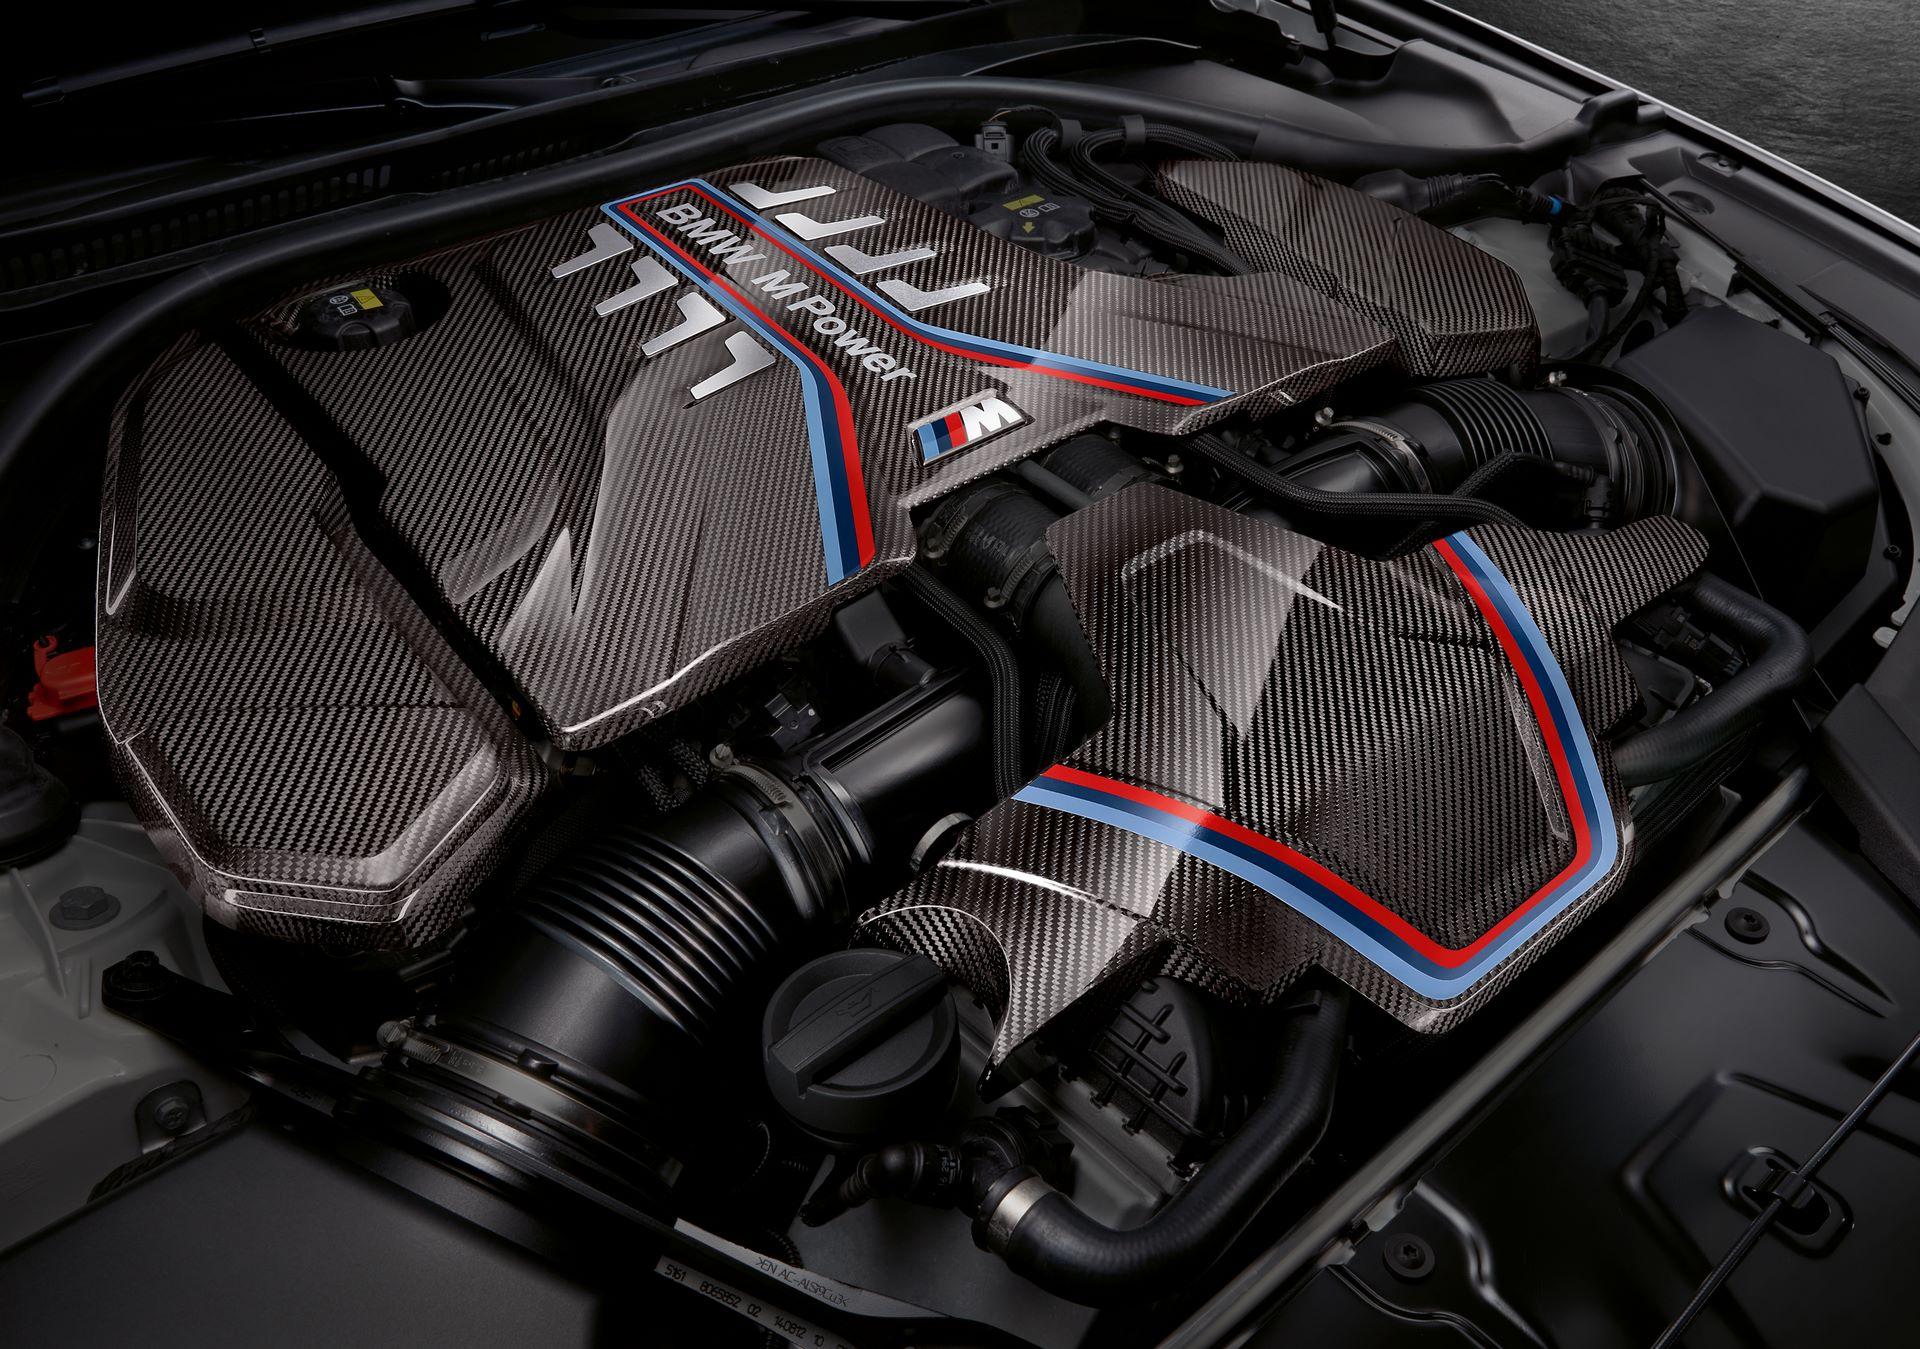 BMW-M-Performance-Parts-for-5-Series-M5-and-M5-Competition-32